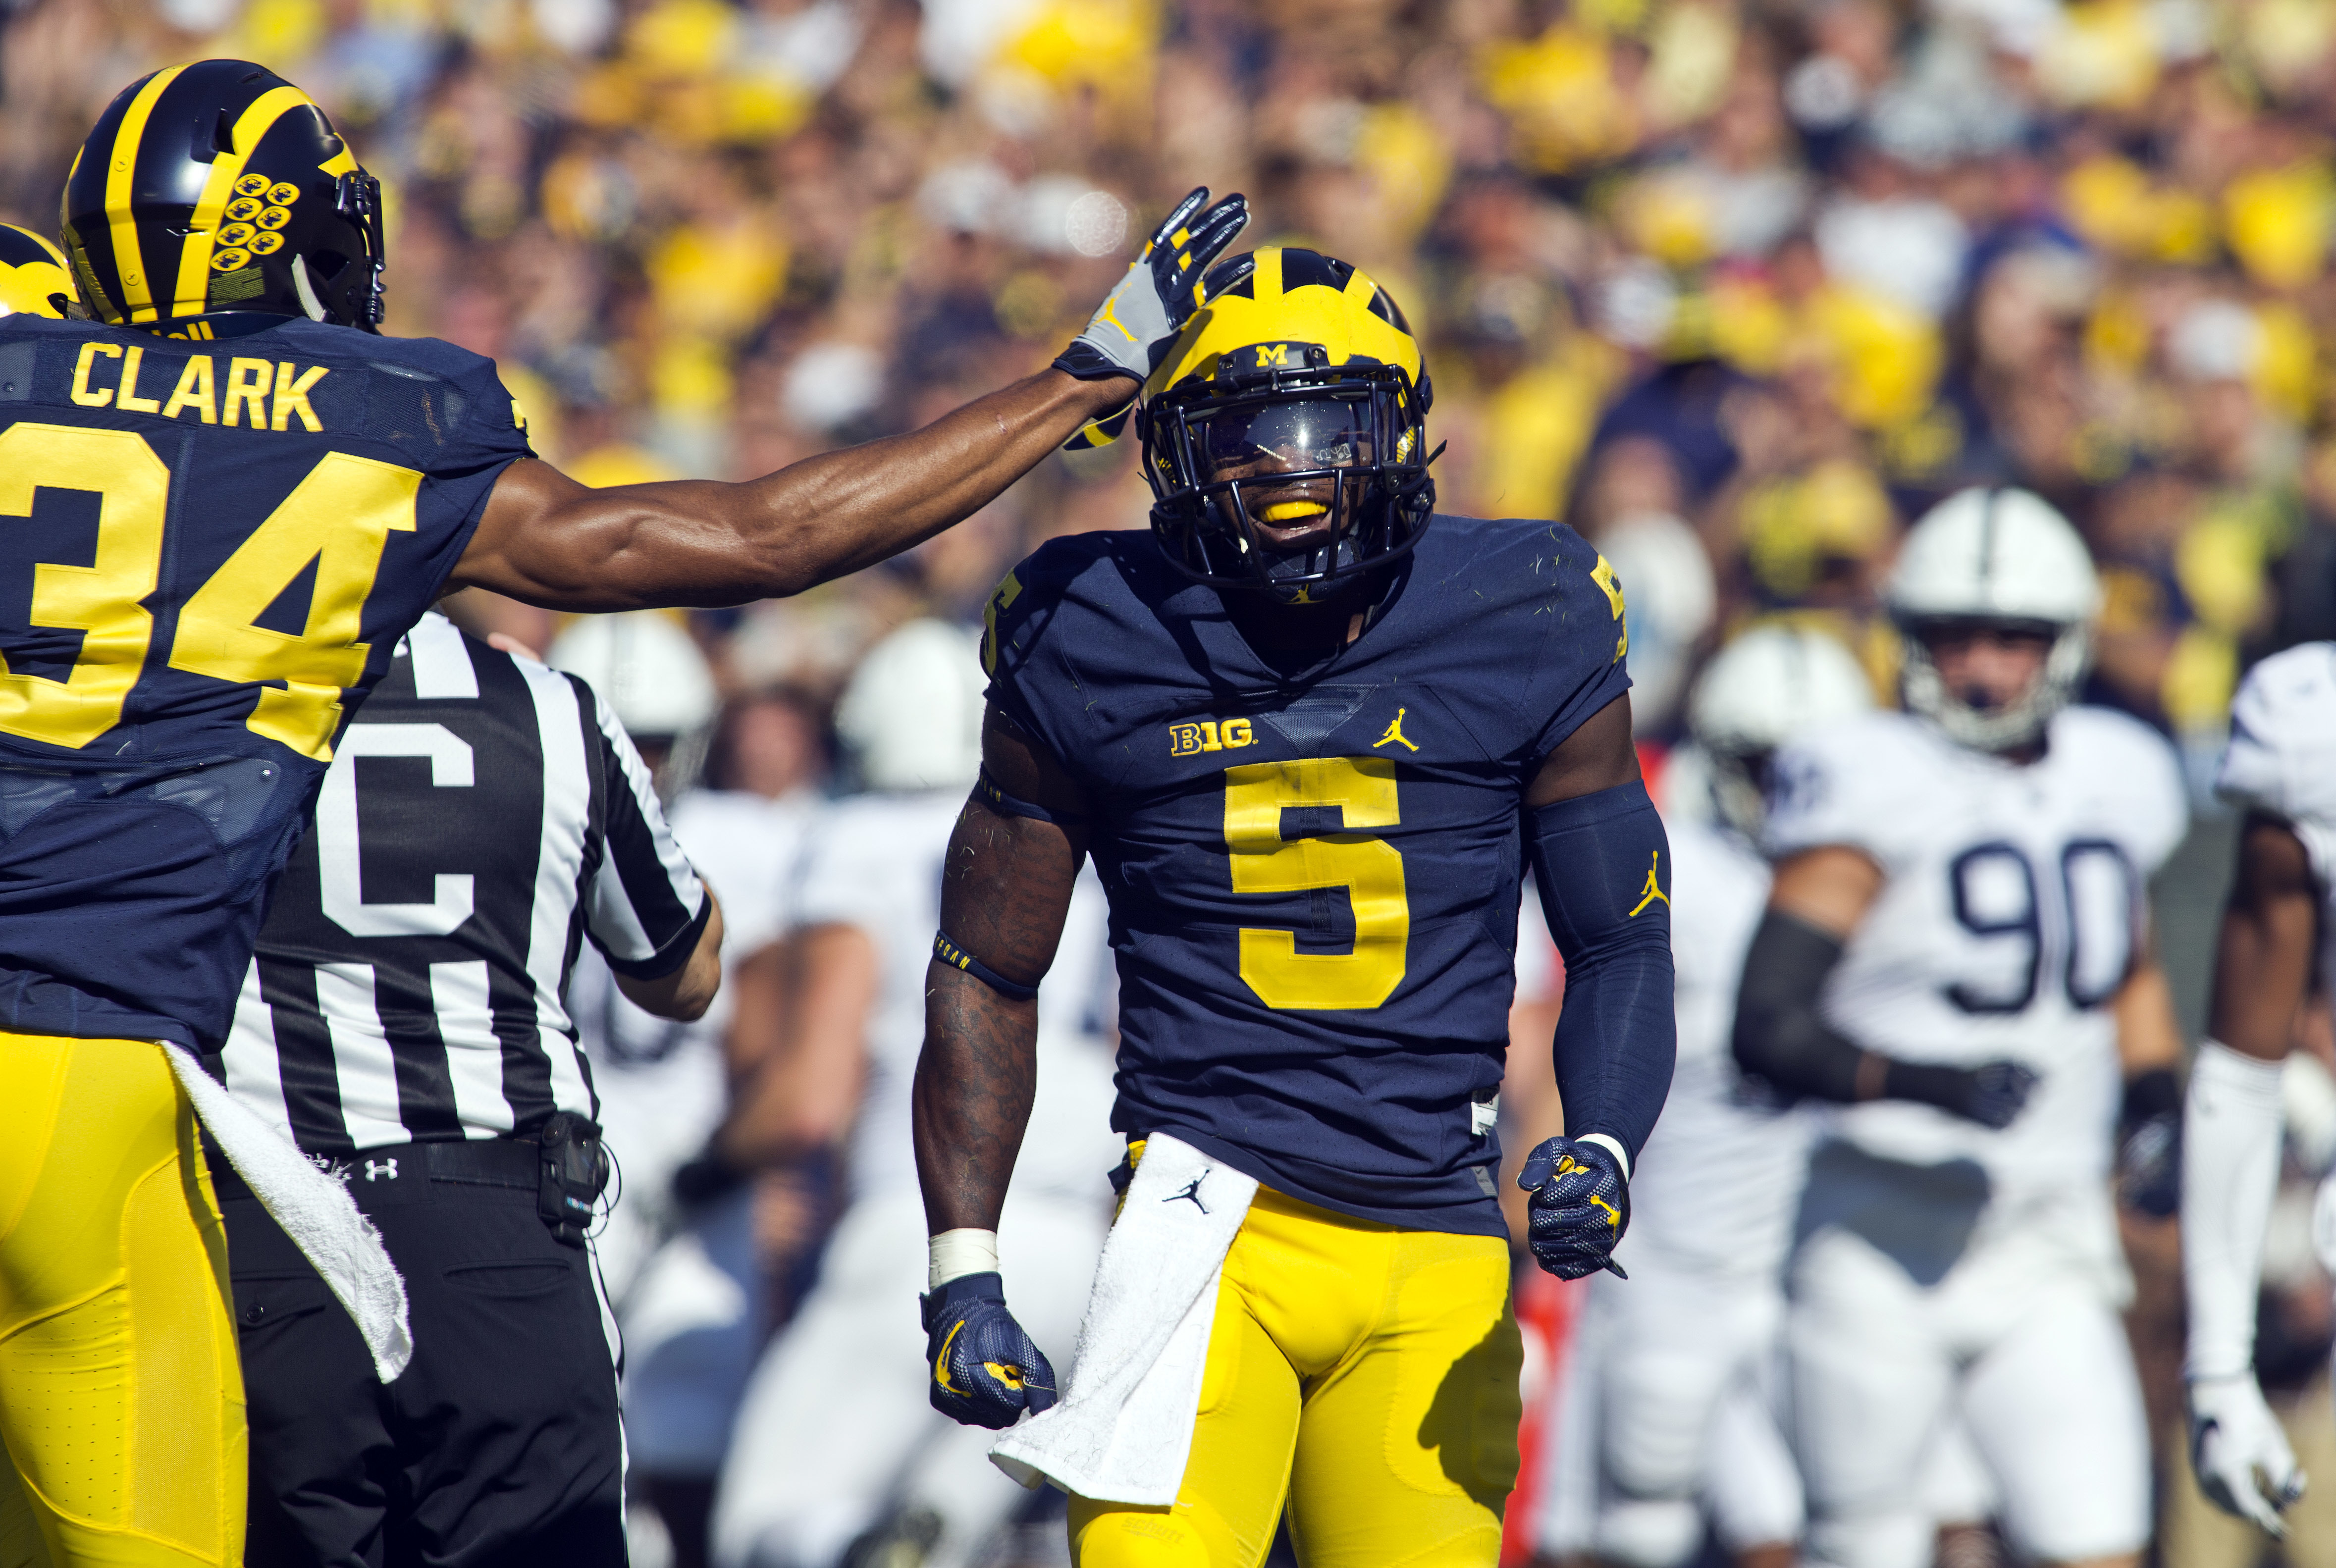 Michigan cornerback Jeremy Clark (34) celebrates a 53-yard punt return by linebacker Jabrill Peppers (5) in the first quarter of an NCAA college football game against Penn State at Michigan Stadium in Ann Arbor, Mich., Saturday, Sept. 24, 2016. Michigan w